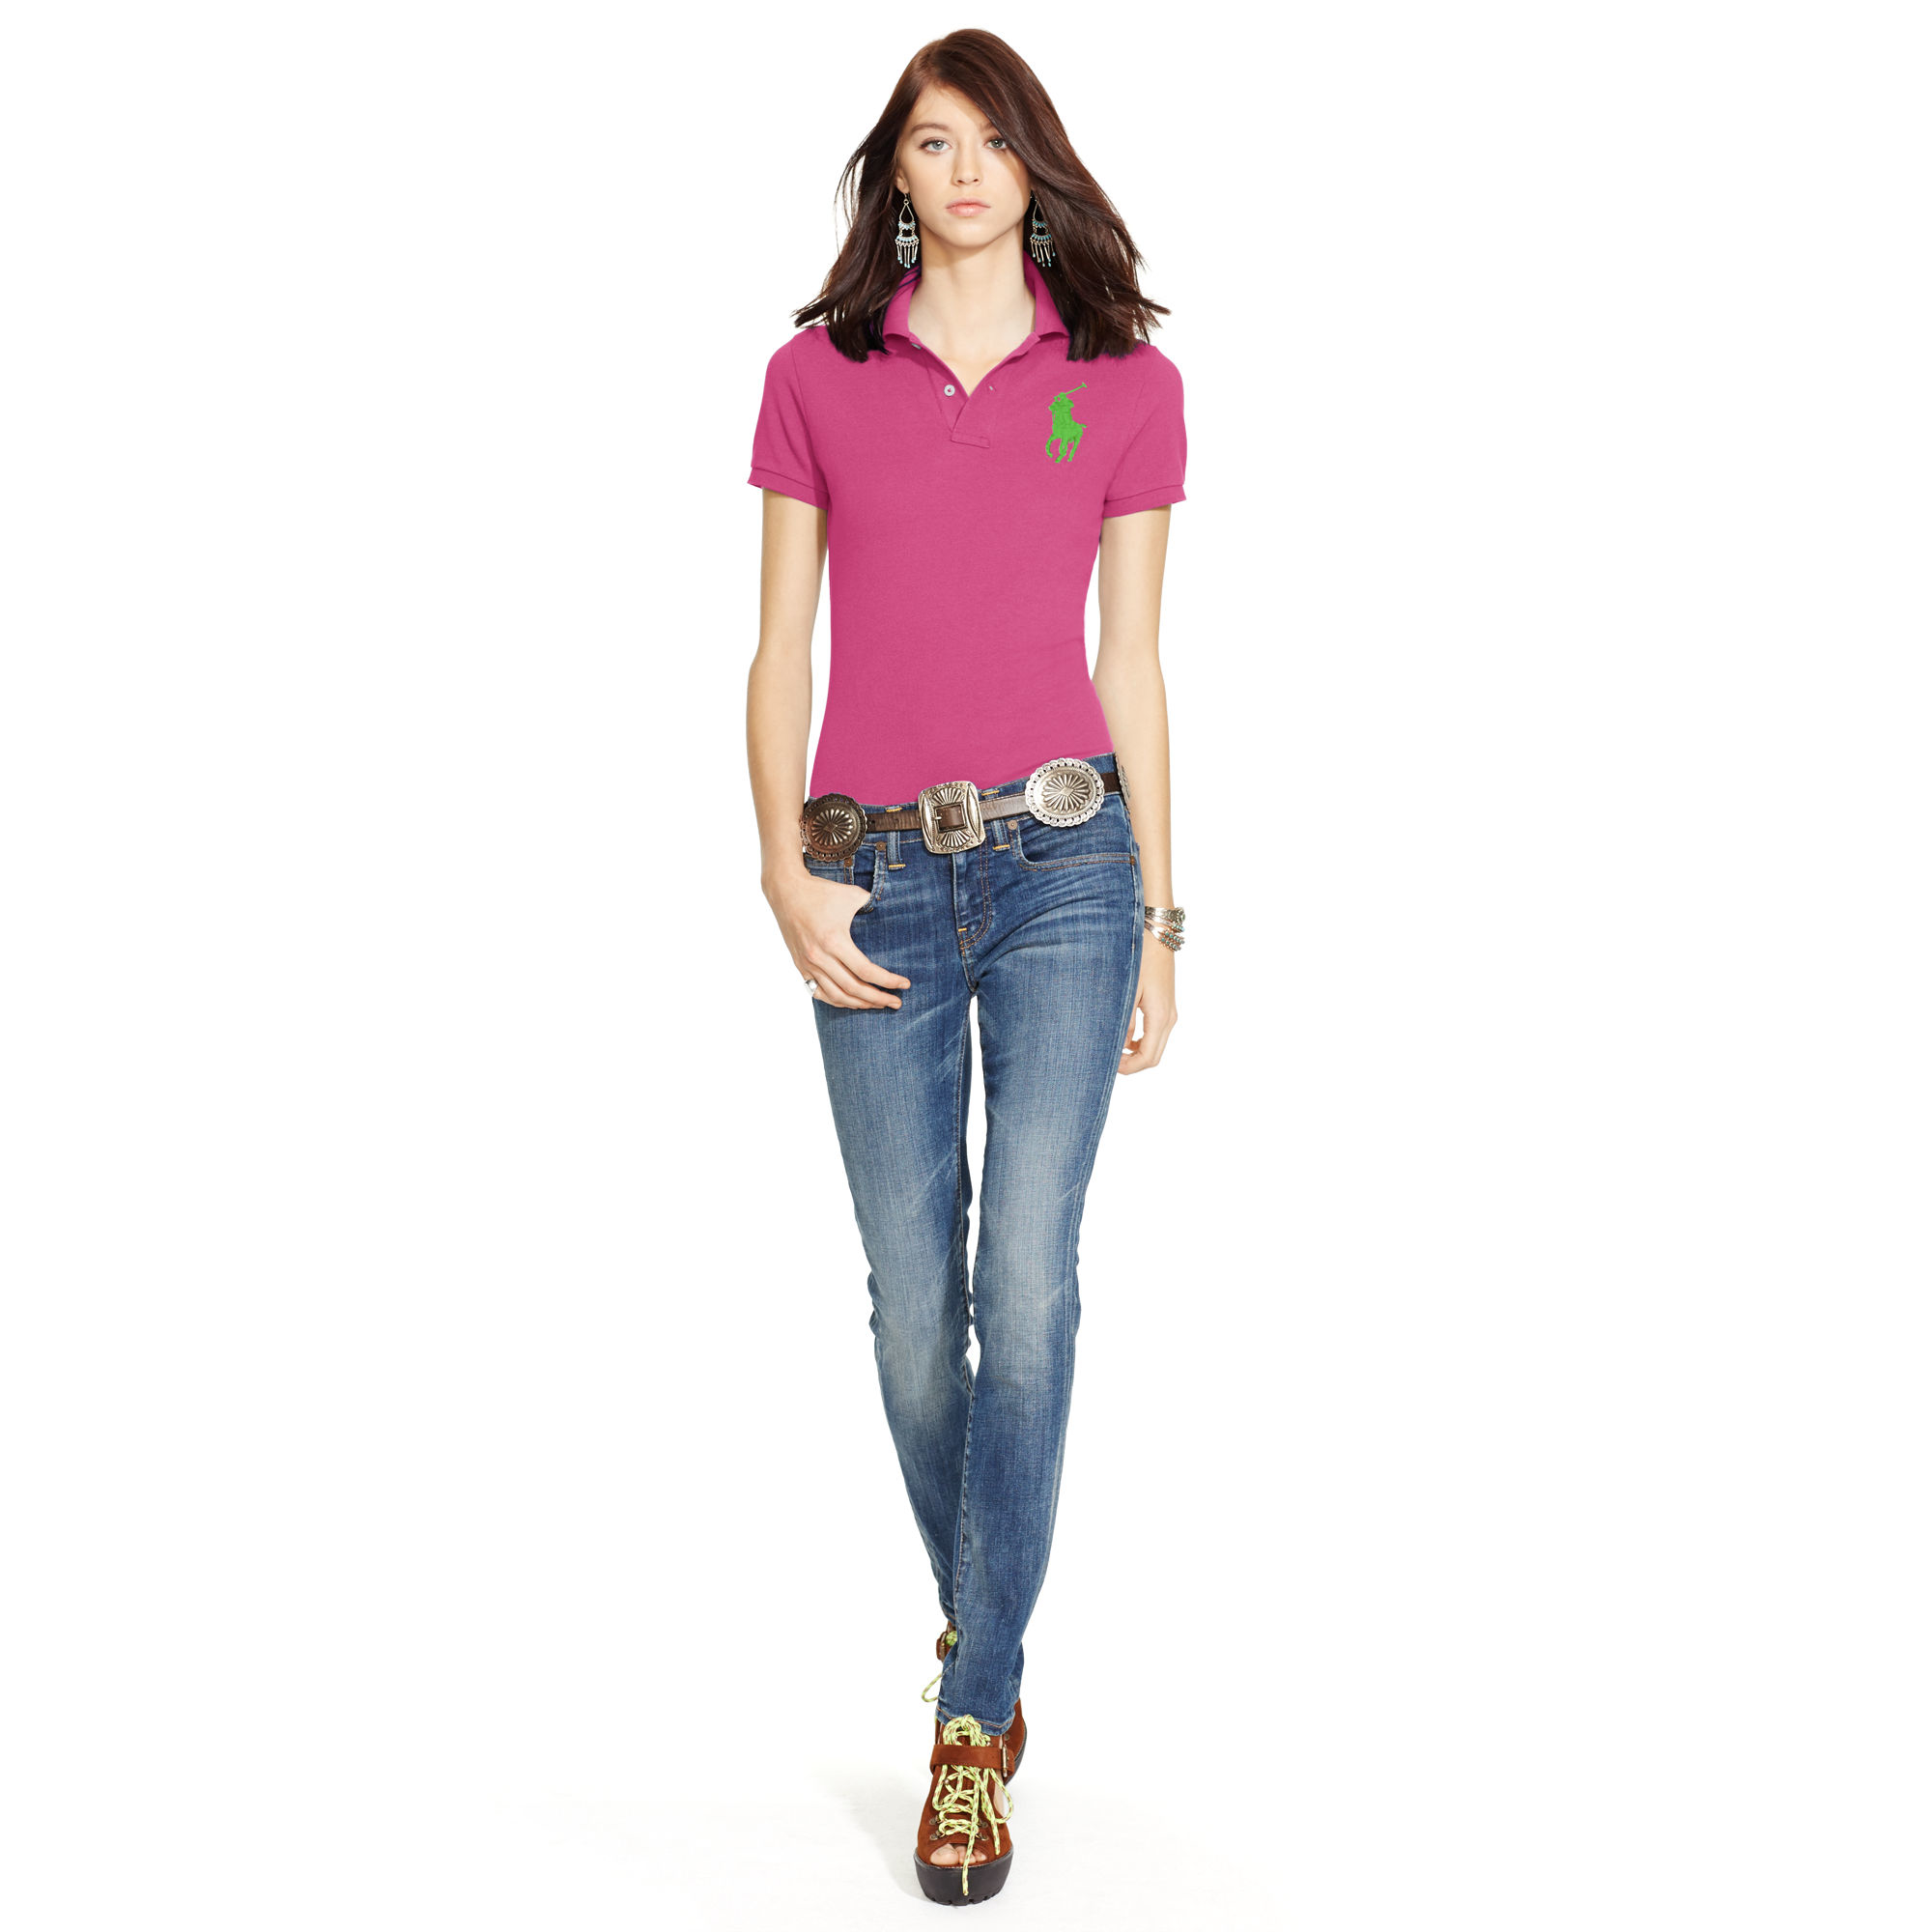 5c1e4ebf Polo Ralph Lauren Skinny-fit Big Pony Polo Shirt in Pink - Lyst